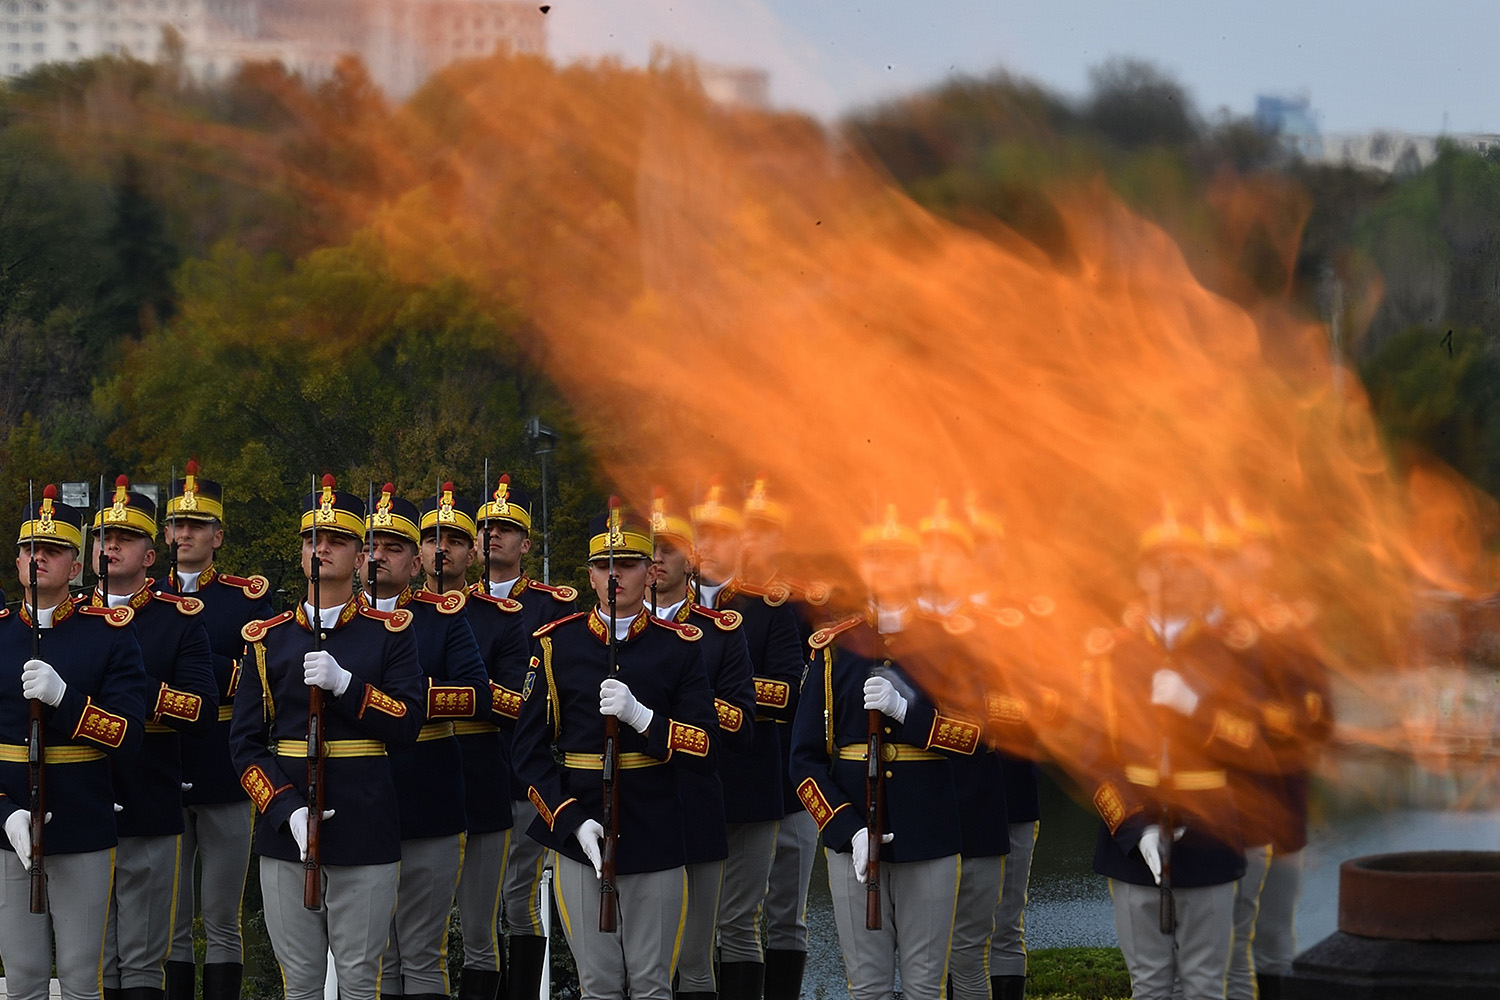 TOPSHOT - Romanian military takes part in celebration of the Romanian Army Force's Day next to the Monument of Unknown Soldier at Carol Park in Bucharest October 25, 2017. The Day of the Romanian Army is the day when Romania celebrates the Army, which on October 25, 1944, liberated the last territory of the country from horthyst occupation, in the central Transylvania region.  / AFP PHOTO / Daniel MIHAILESCU AND DANIEL MIHAILESCU        (Photo credit should read DANIEL MIHAILESCU/AFP/Getty Images)